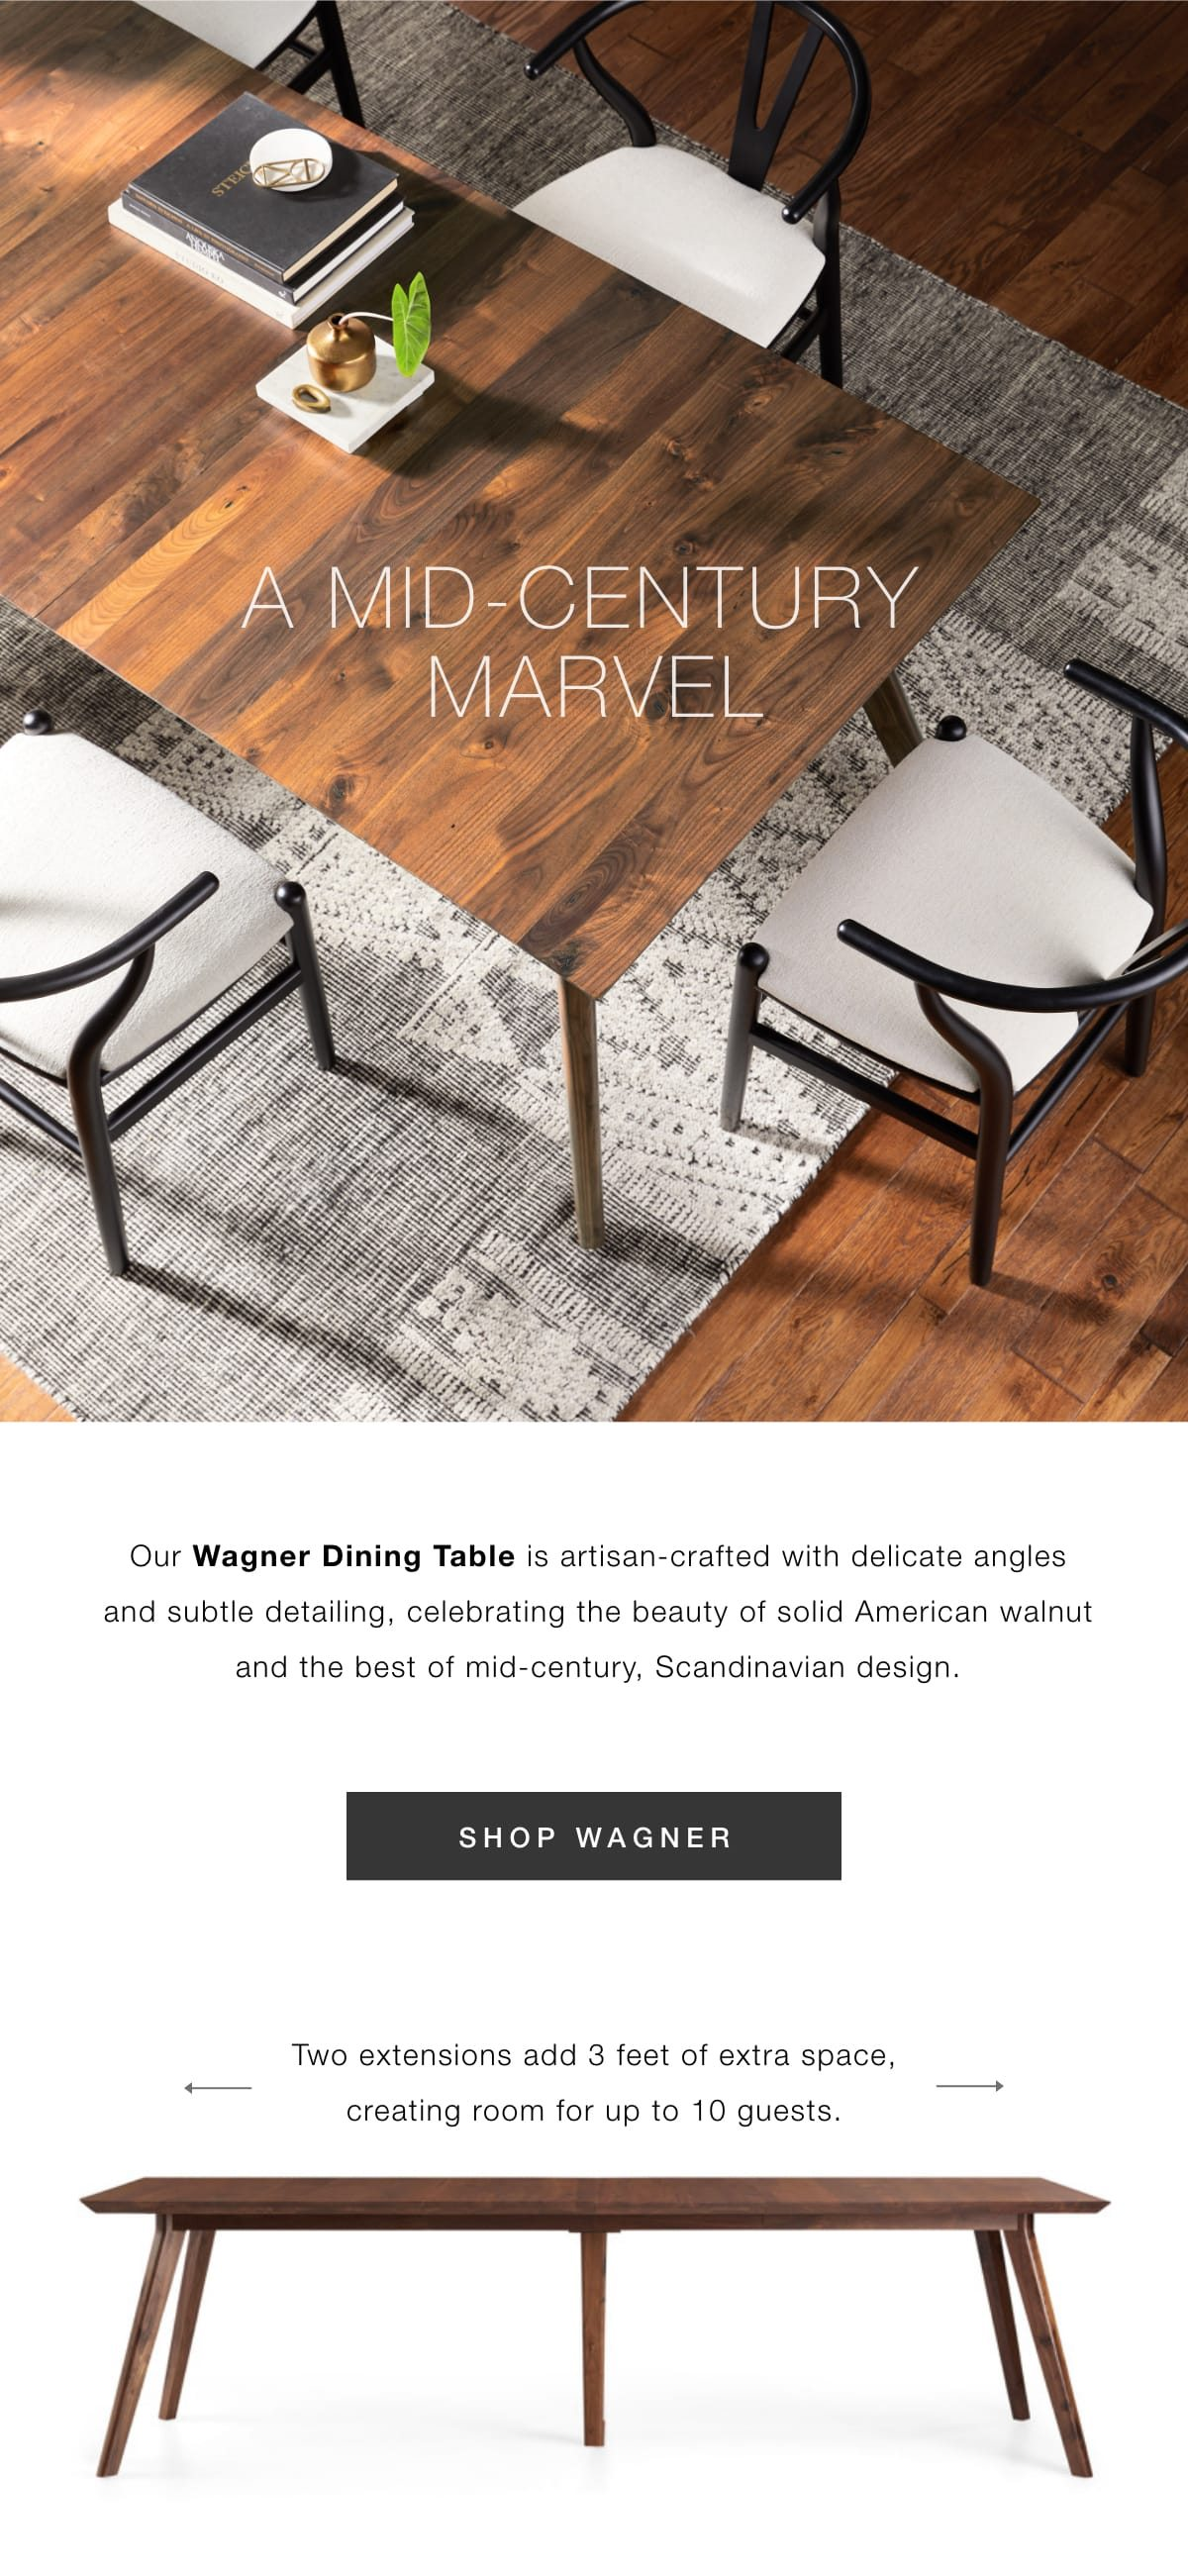 A mid-century marvel: shop Wagner